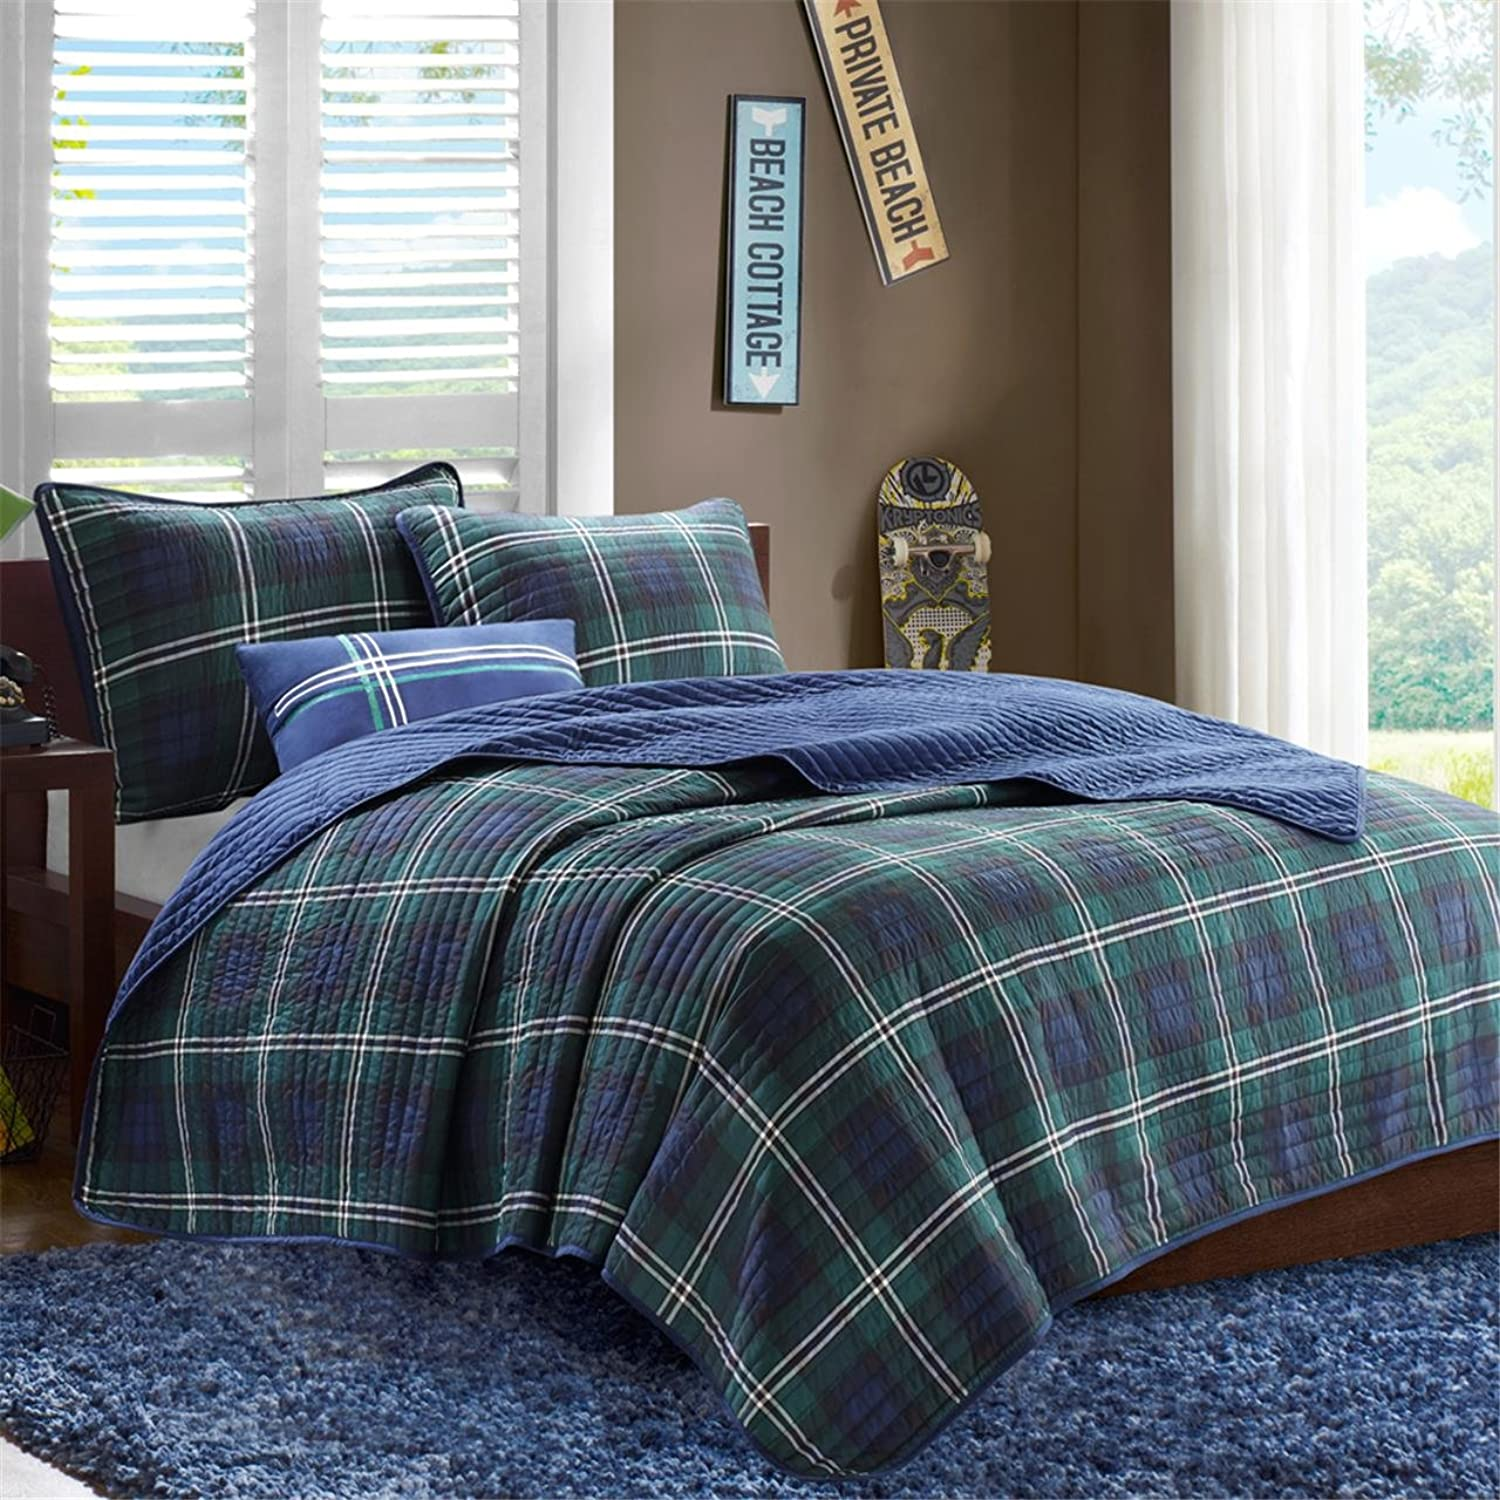 MiZone Brody Full Queen Size Teen Boys Quilt Bedding Set  bluee, Green, Plaid – 4 Piece Boys Bedding Quilt Coverlets – Peach Skin Fabric Bed Quilts Quilted Coverlet